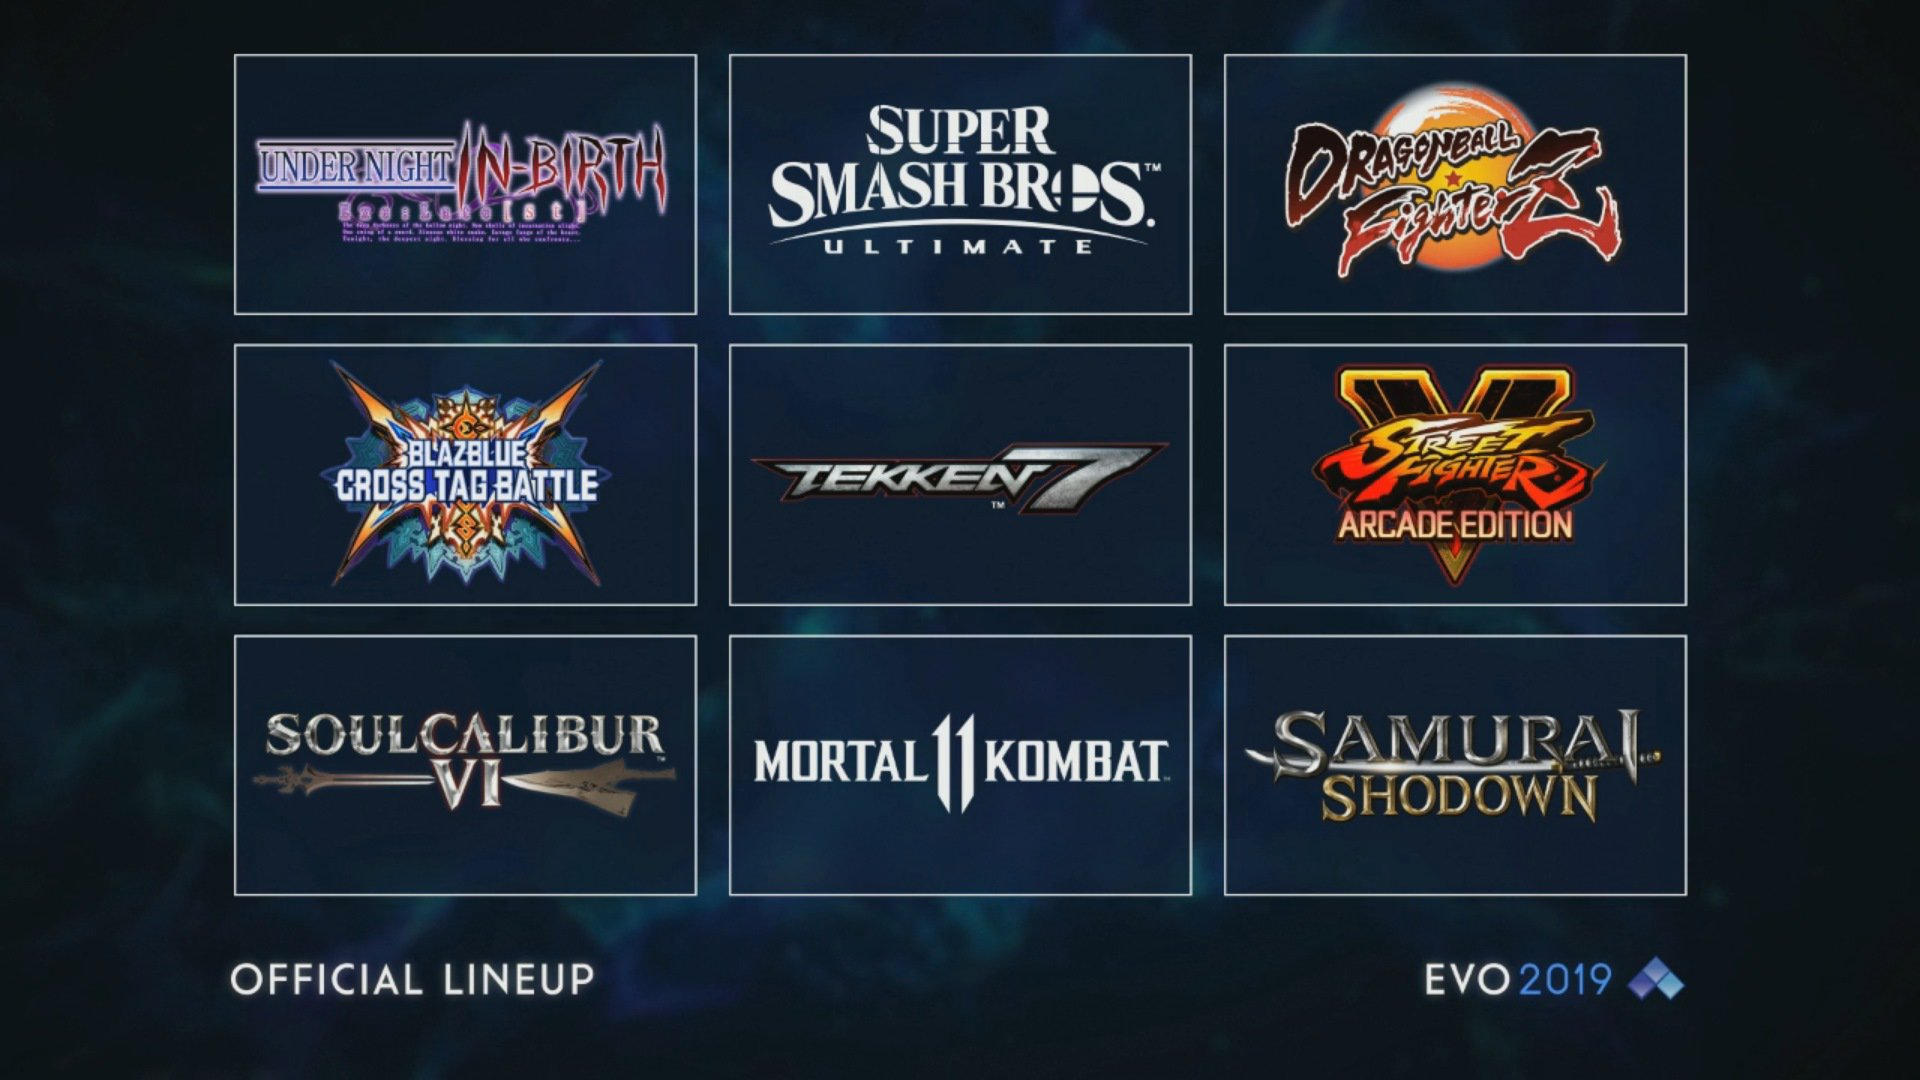 Super Smash Bros Ultimate Will Be The Only Smash Bros Game At EVO 2019 My Nintendo News